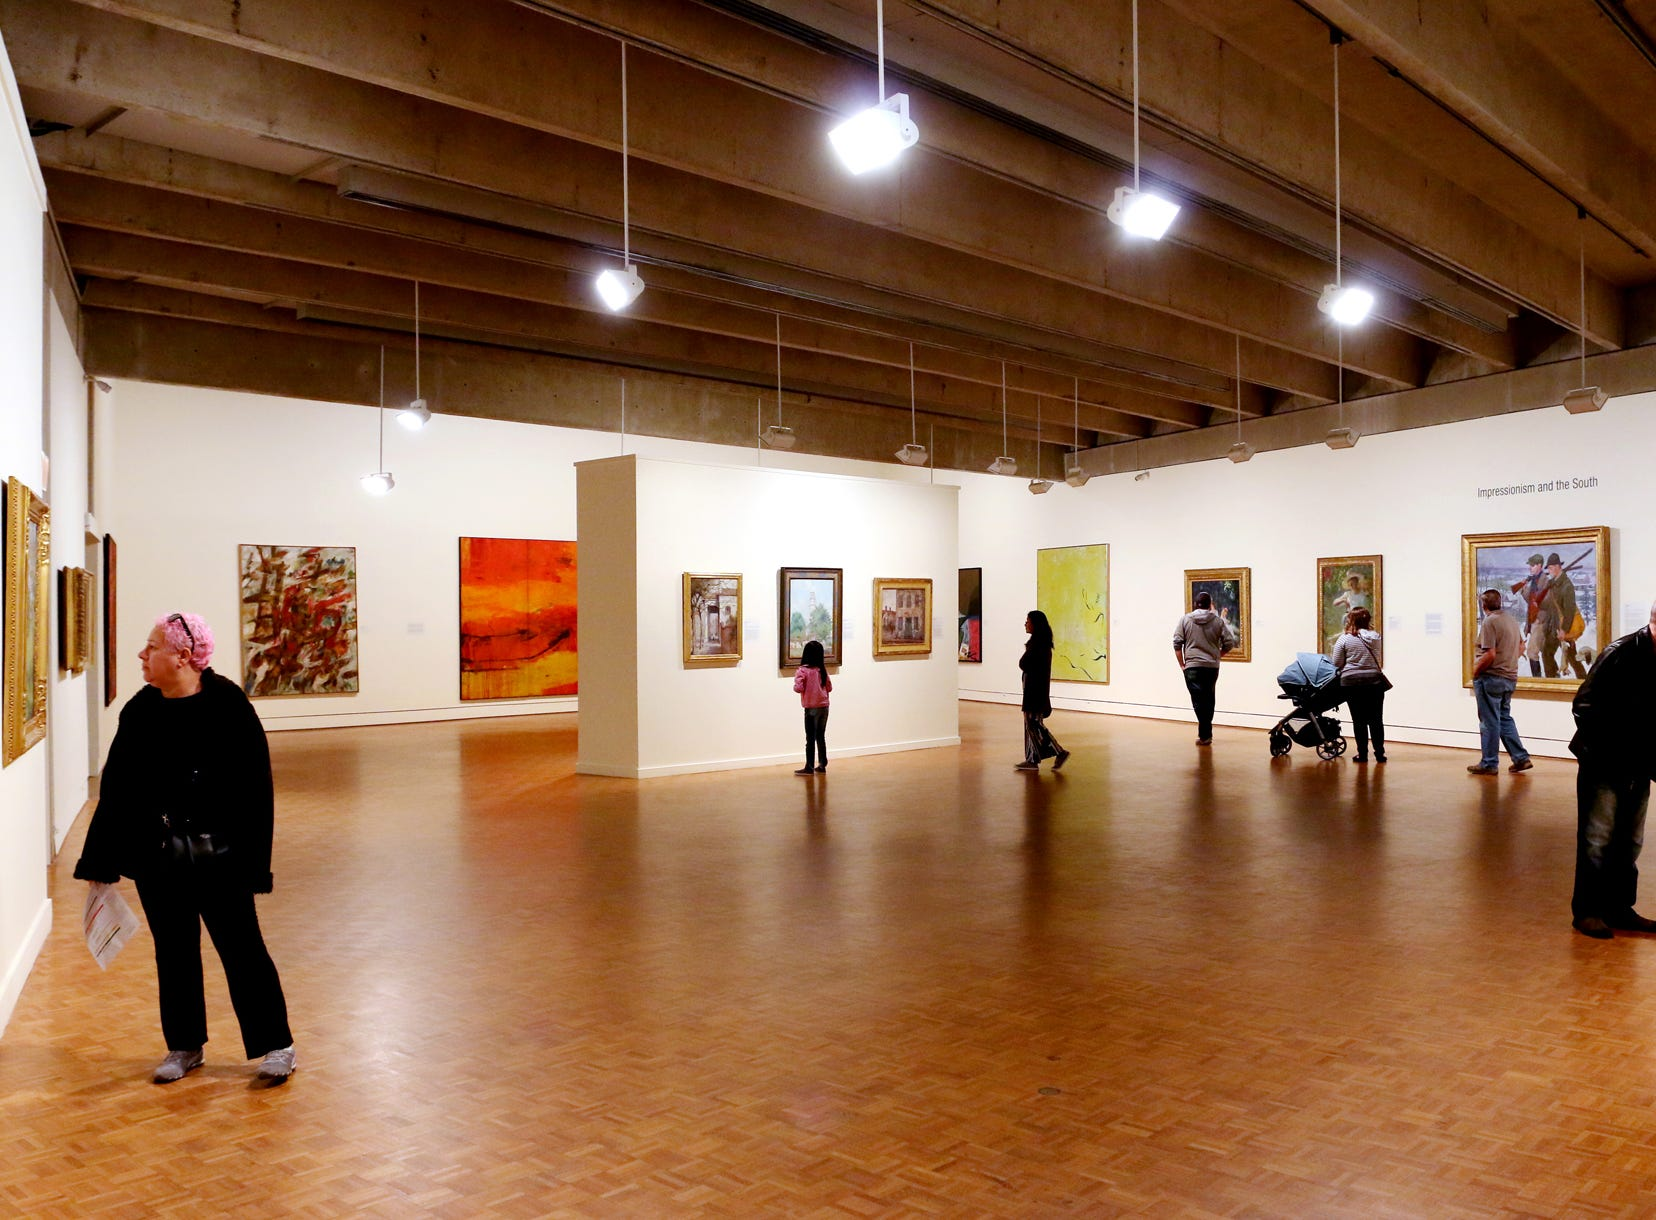 Museum goers enjoy art at the Greenville County Museum of Art in downtown Greenville.